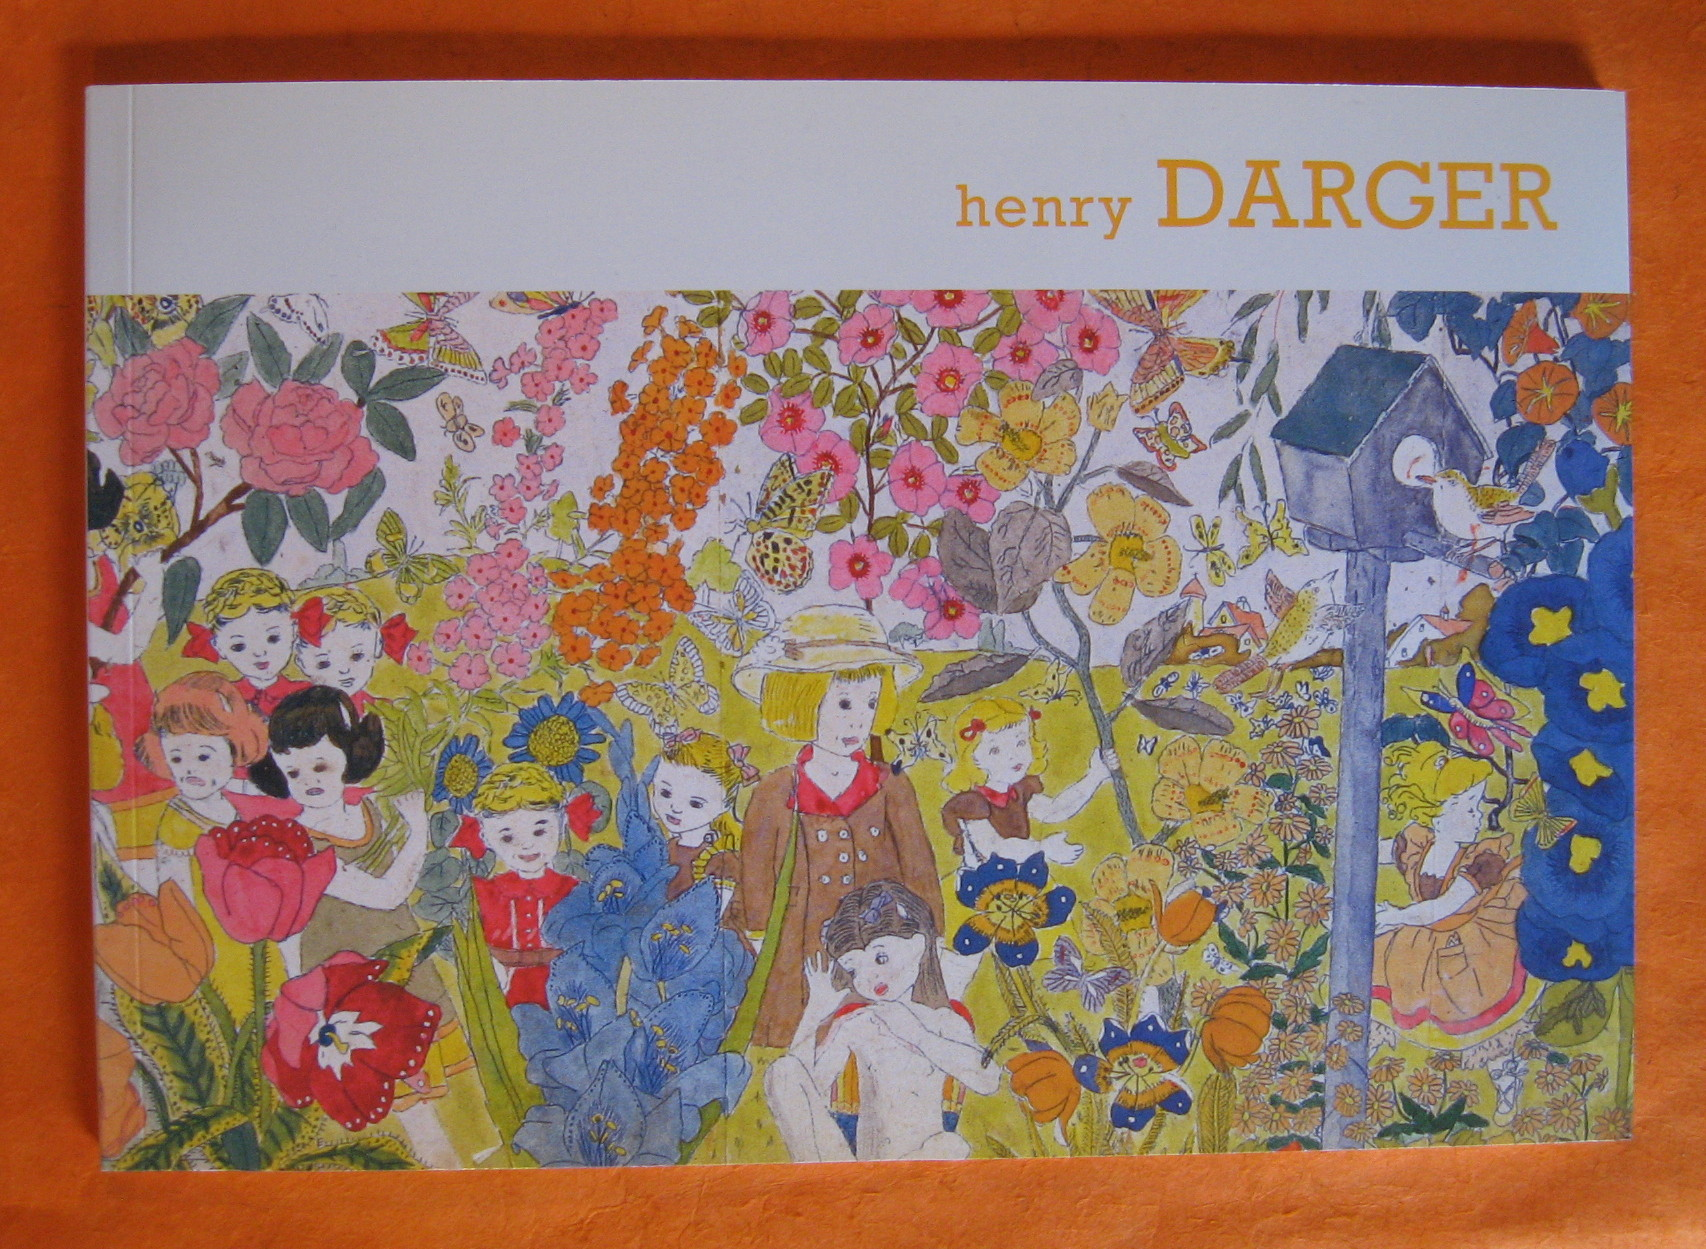 Sound and Fury: The Art of Henry Darger / Bruit et Fureur:  L'oeuvre De Henry Darger, Edward Madrid Gomez